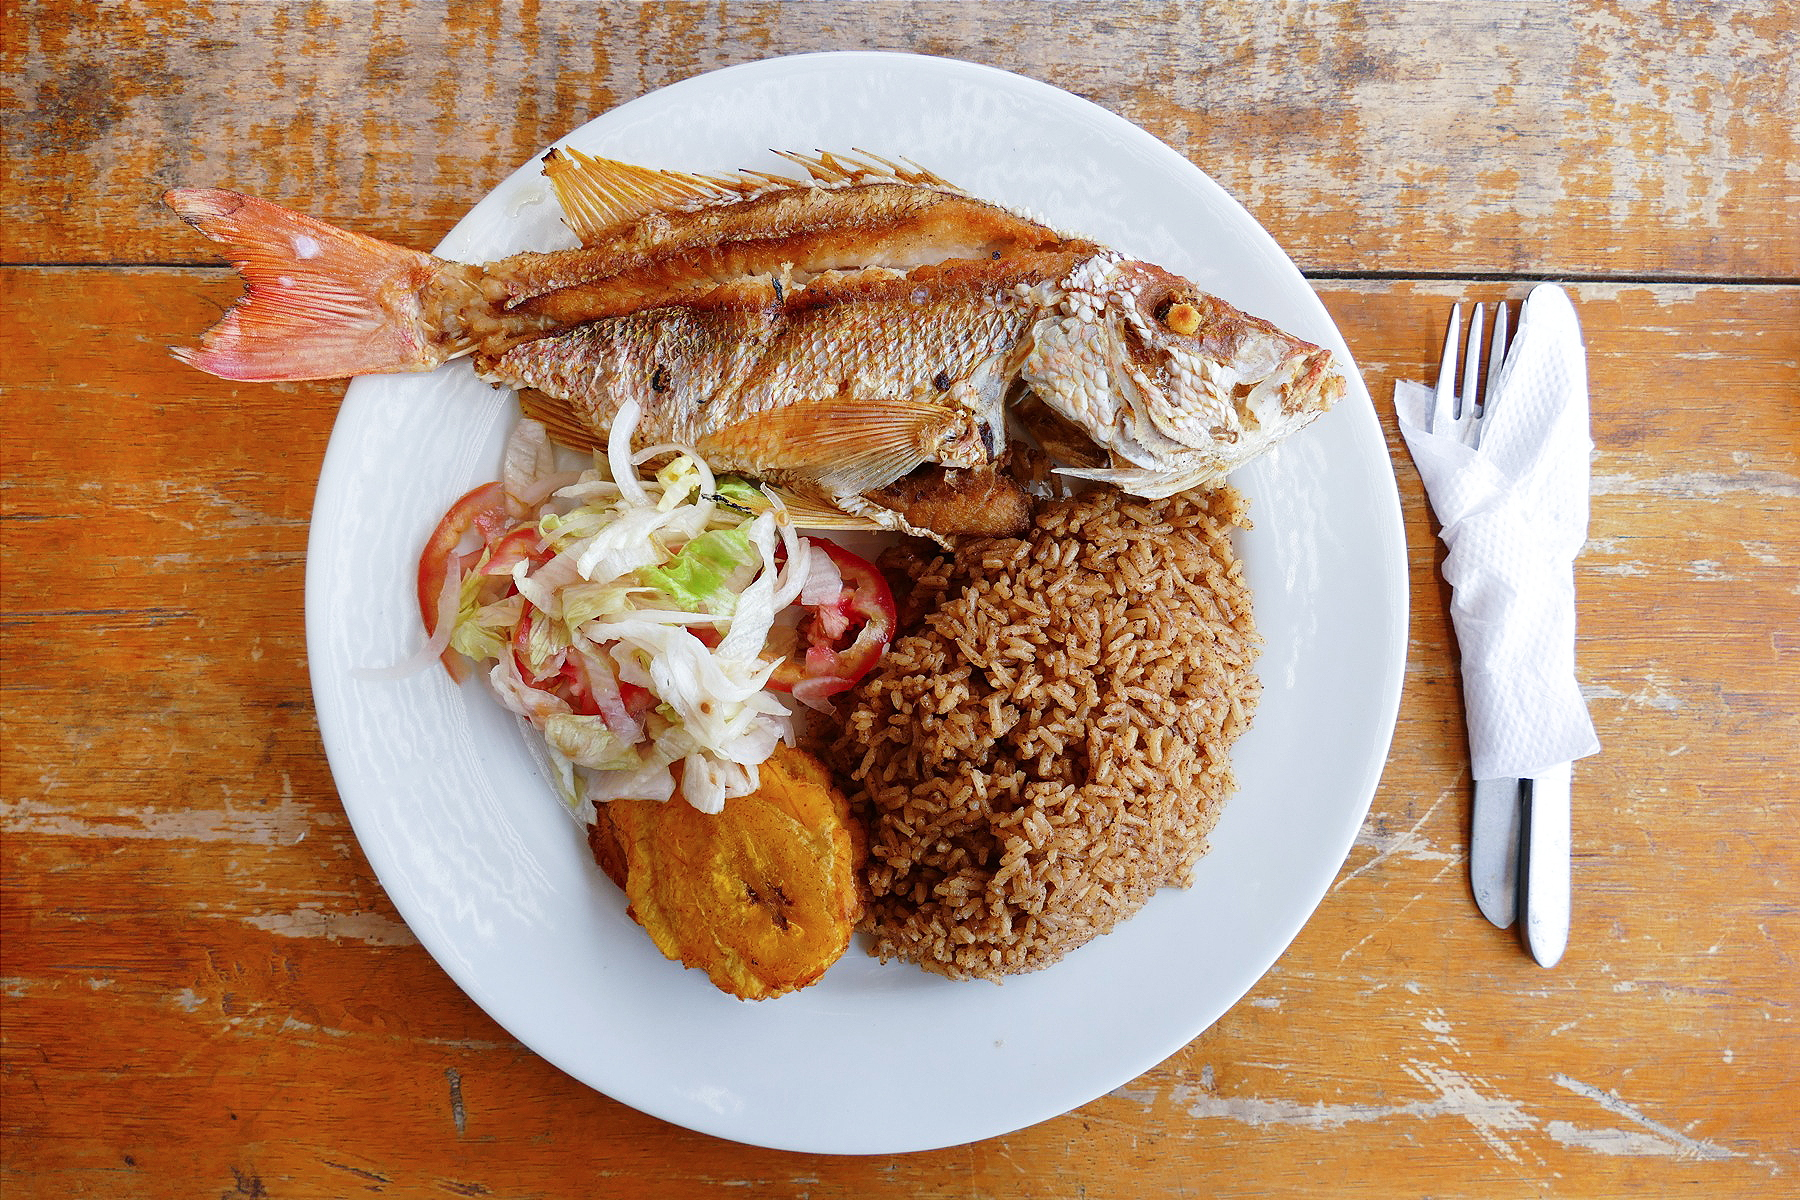 """When you order """"lunch"""" (no menu) at Los Flamencos, you get a whole fried fish with patacones (fried plantains) and rice. Noah Strycker"""